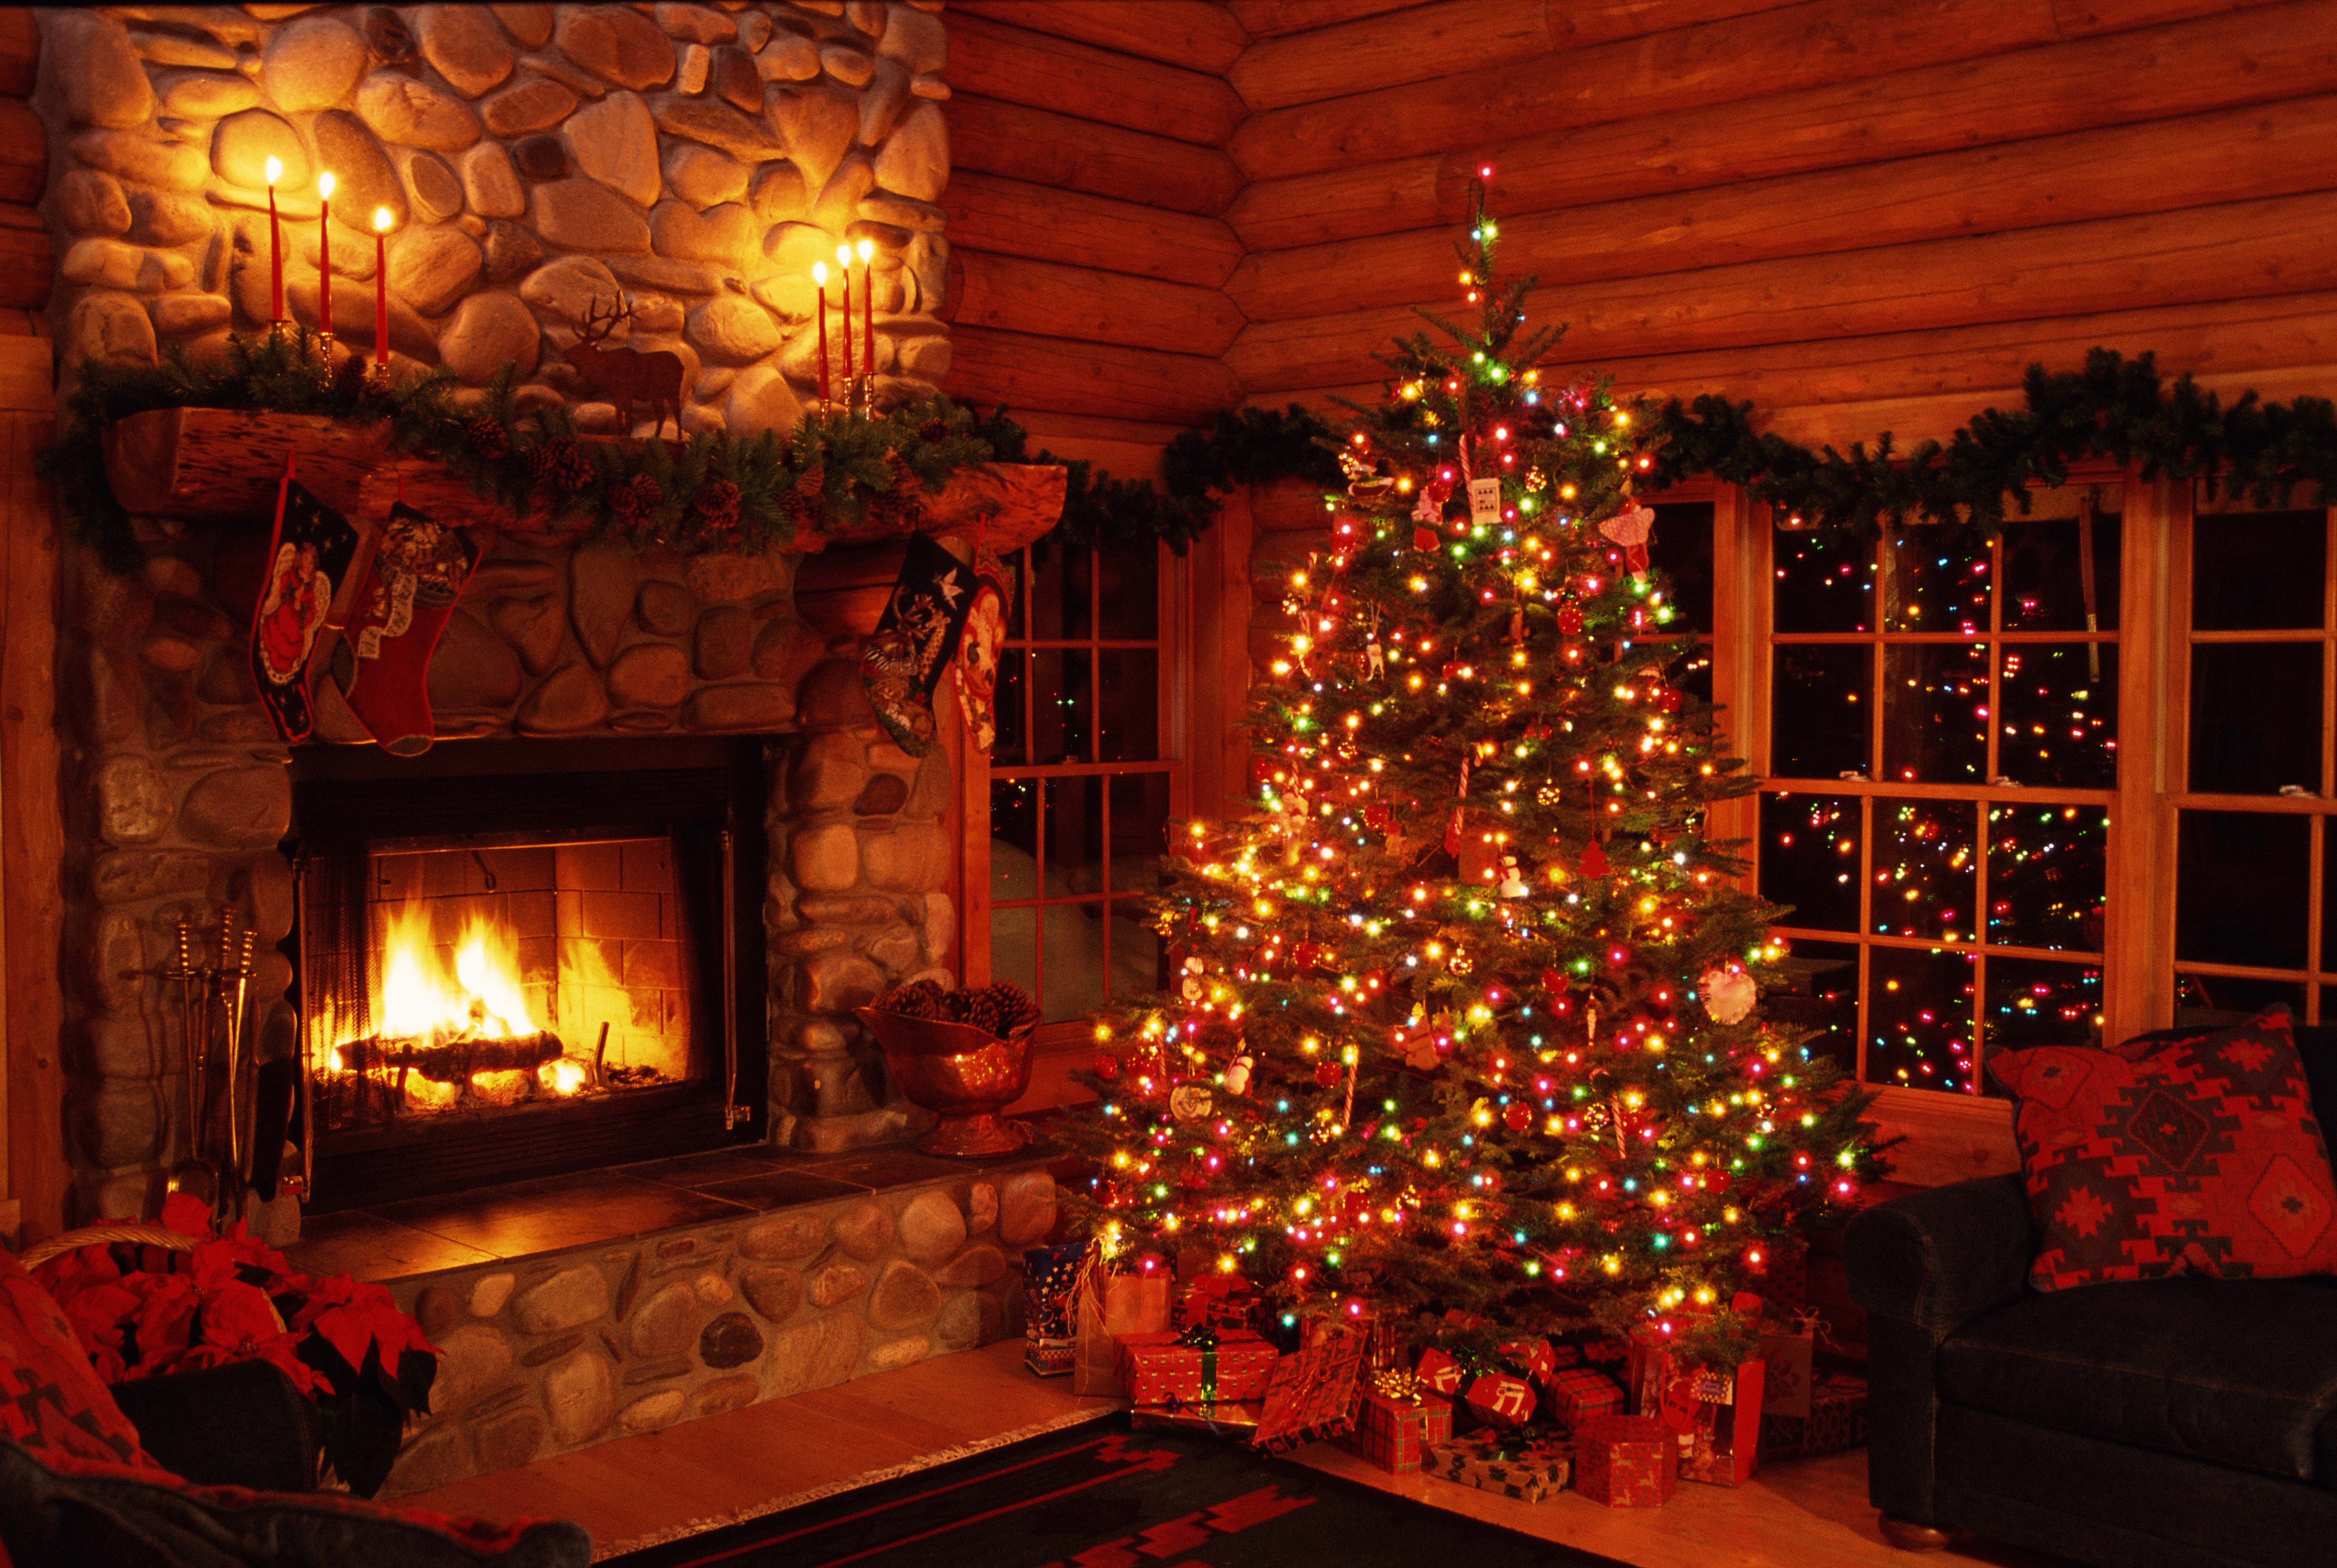 Science Explains How A Christmas Tree Turns Into A Deadly Inferno